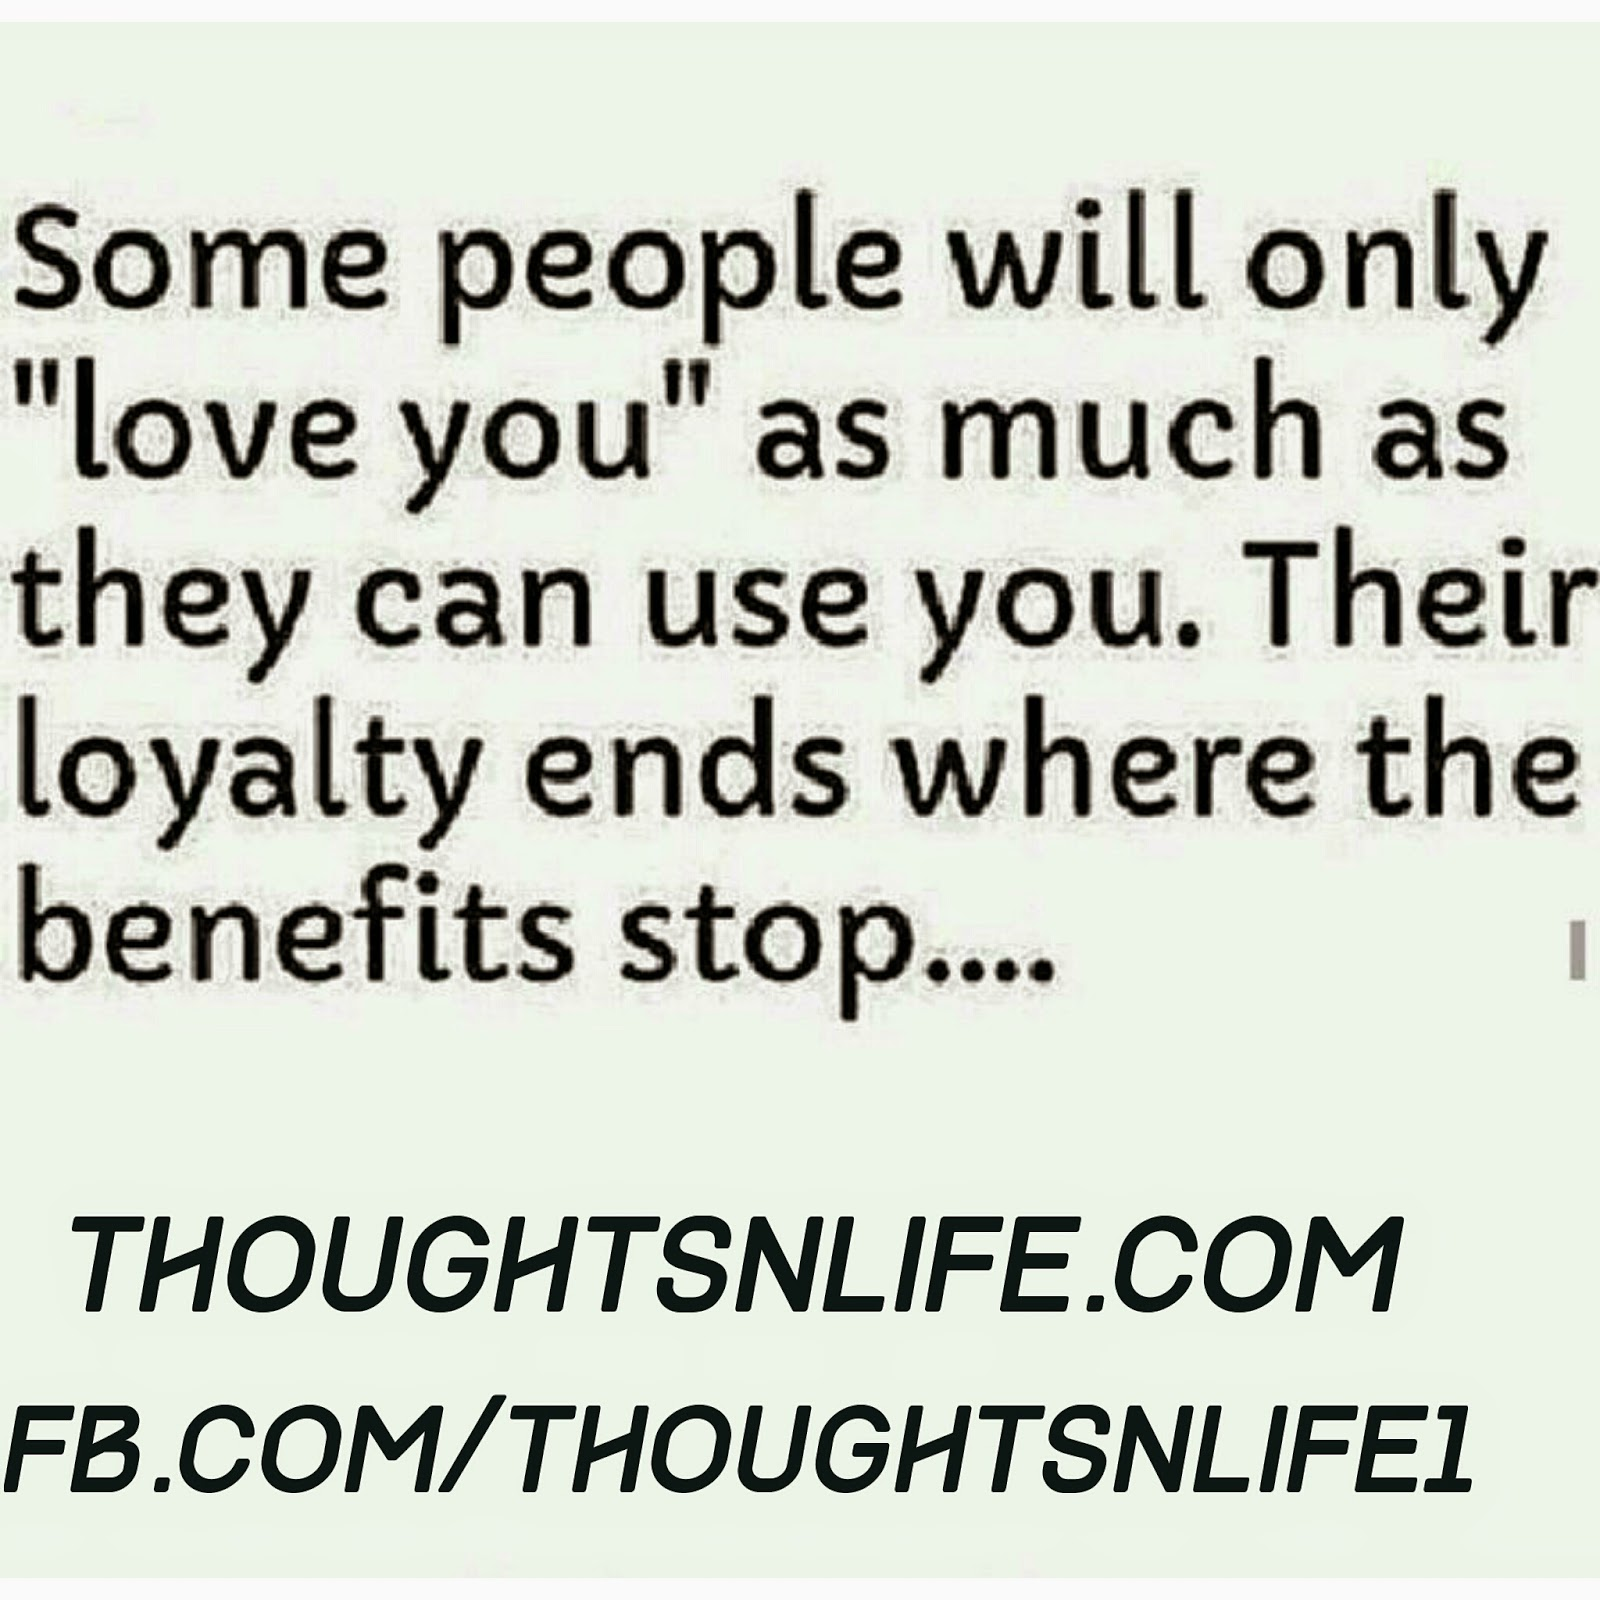 Their Loyalty Ends Where The Benefits Stops